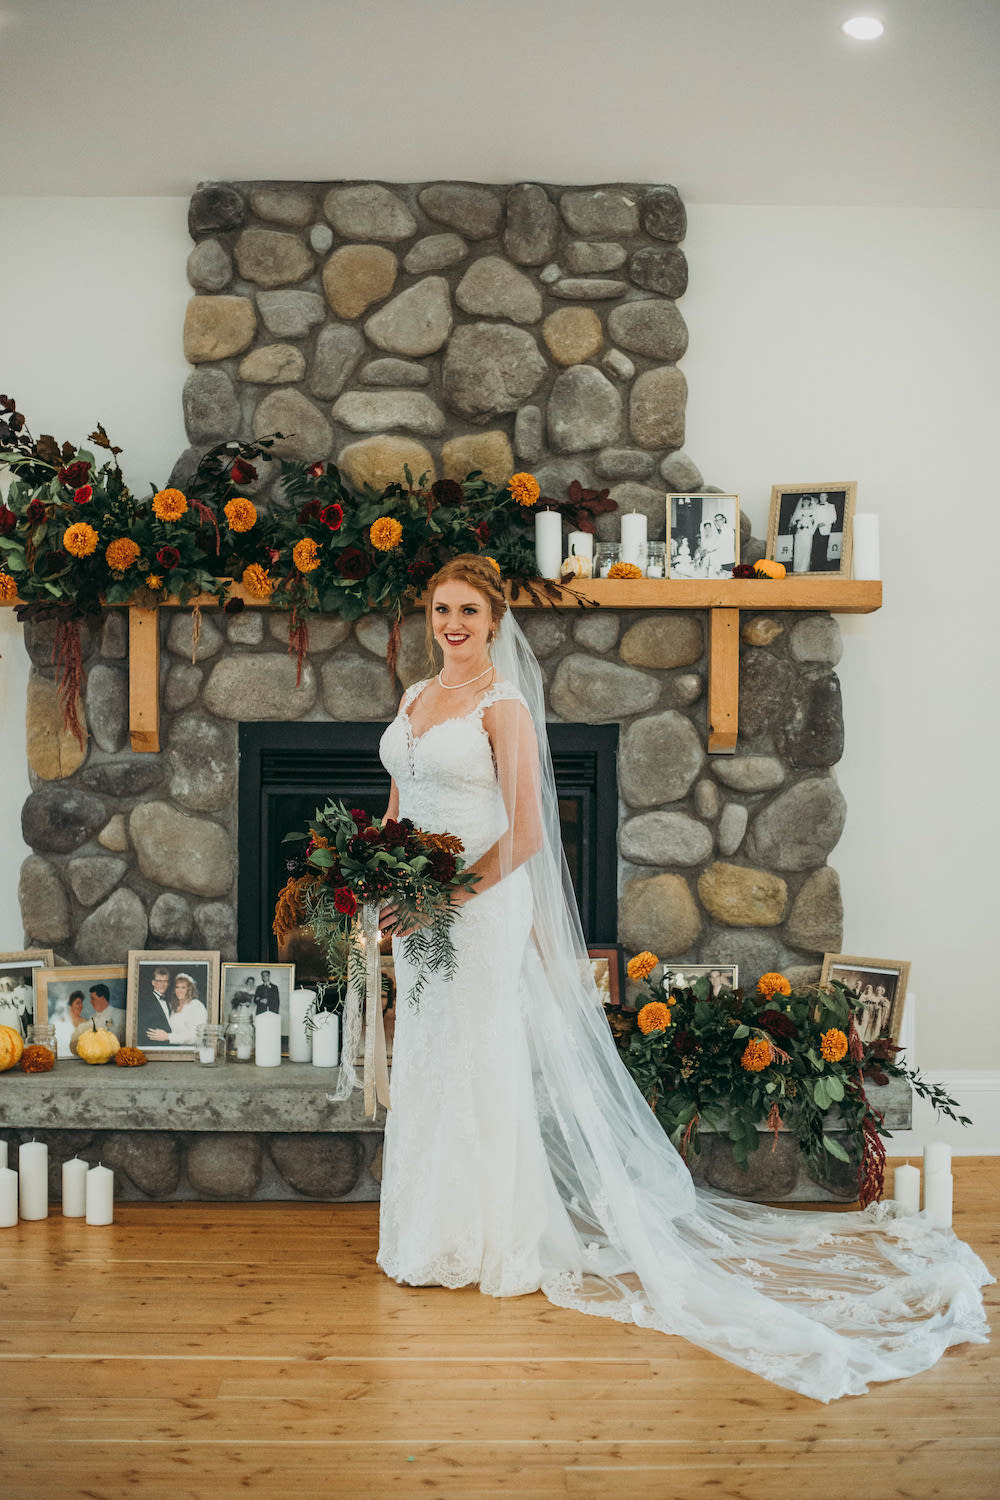 WEddings at Whitetail Meadow - Indoor Ceremonies at Whitetail Meadow